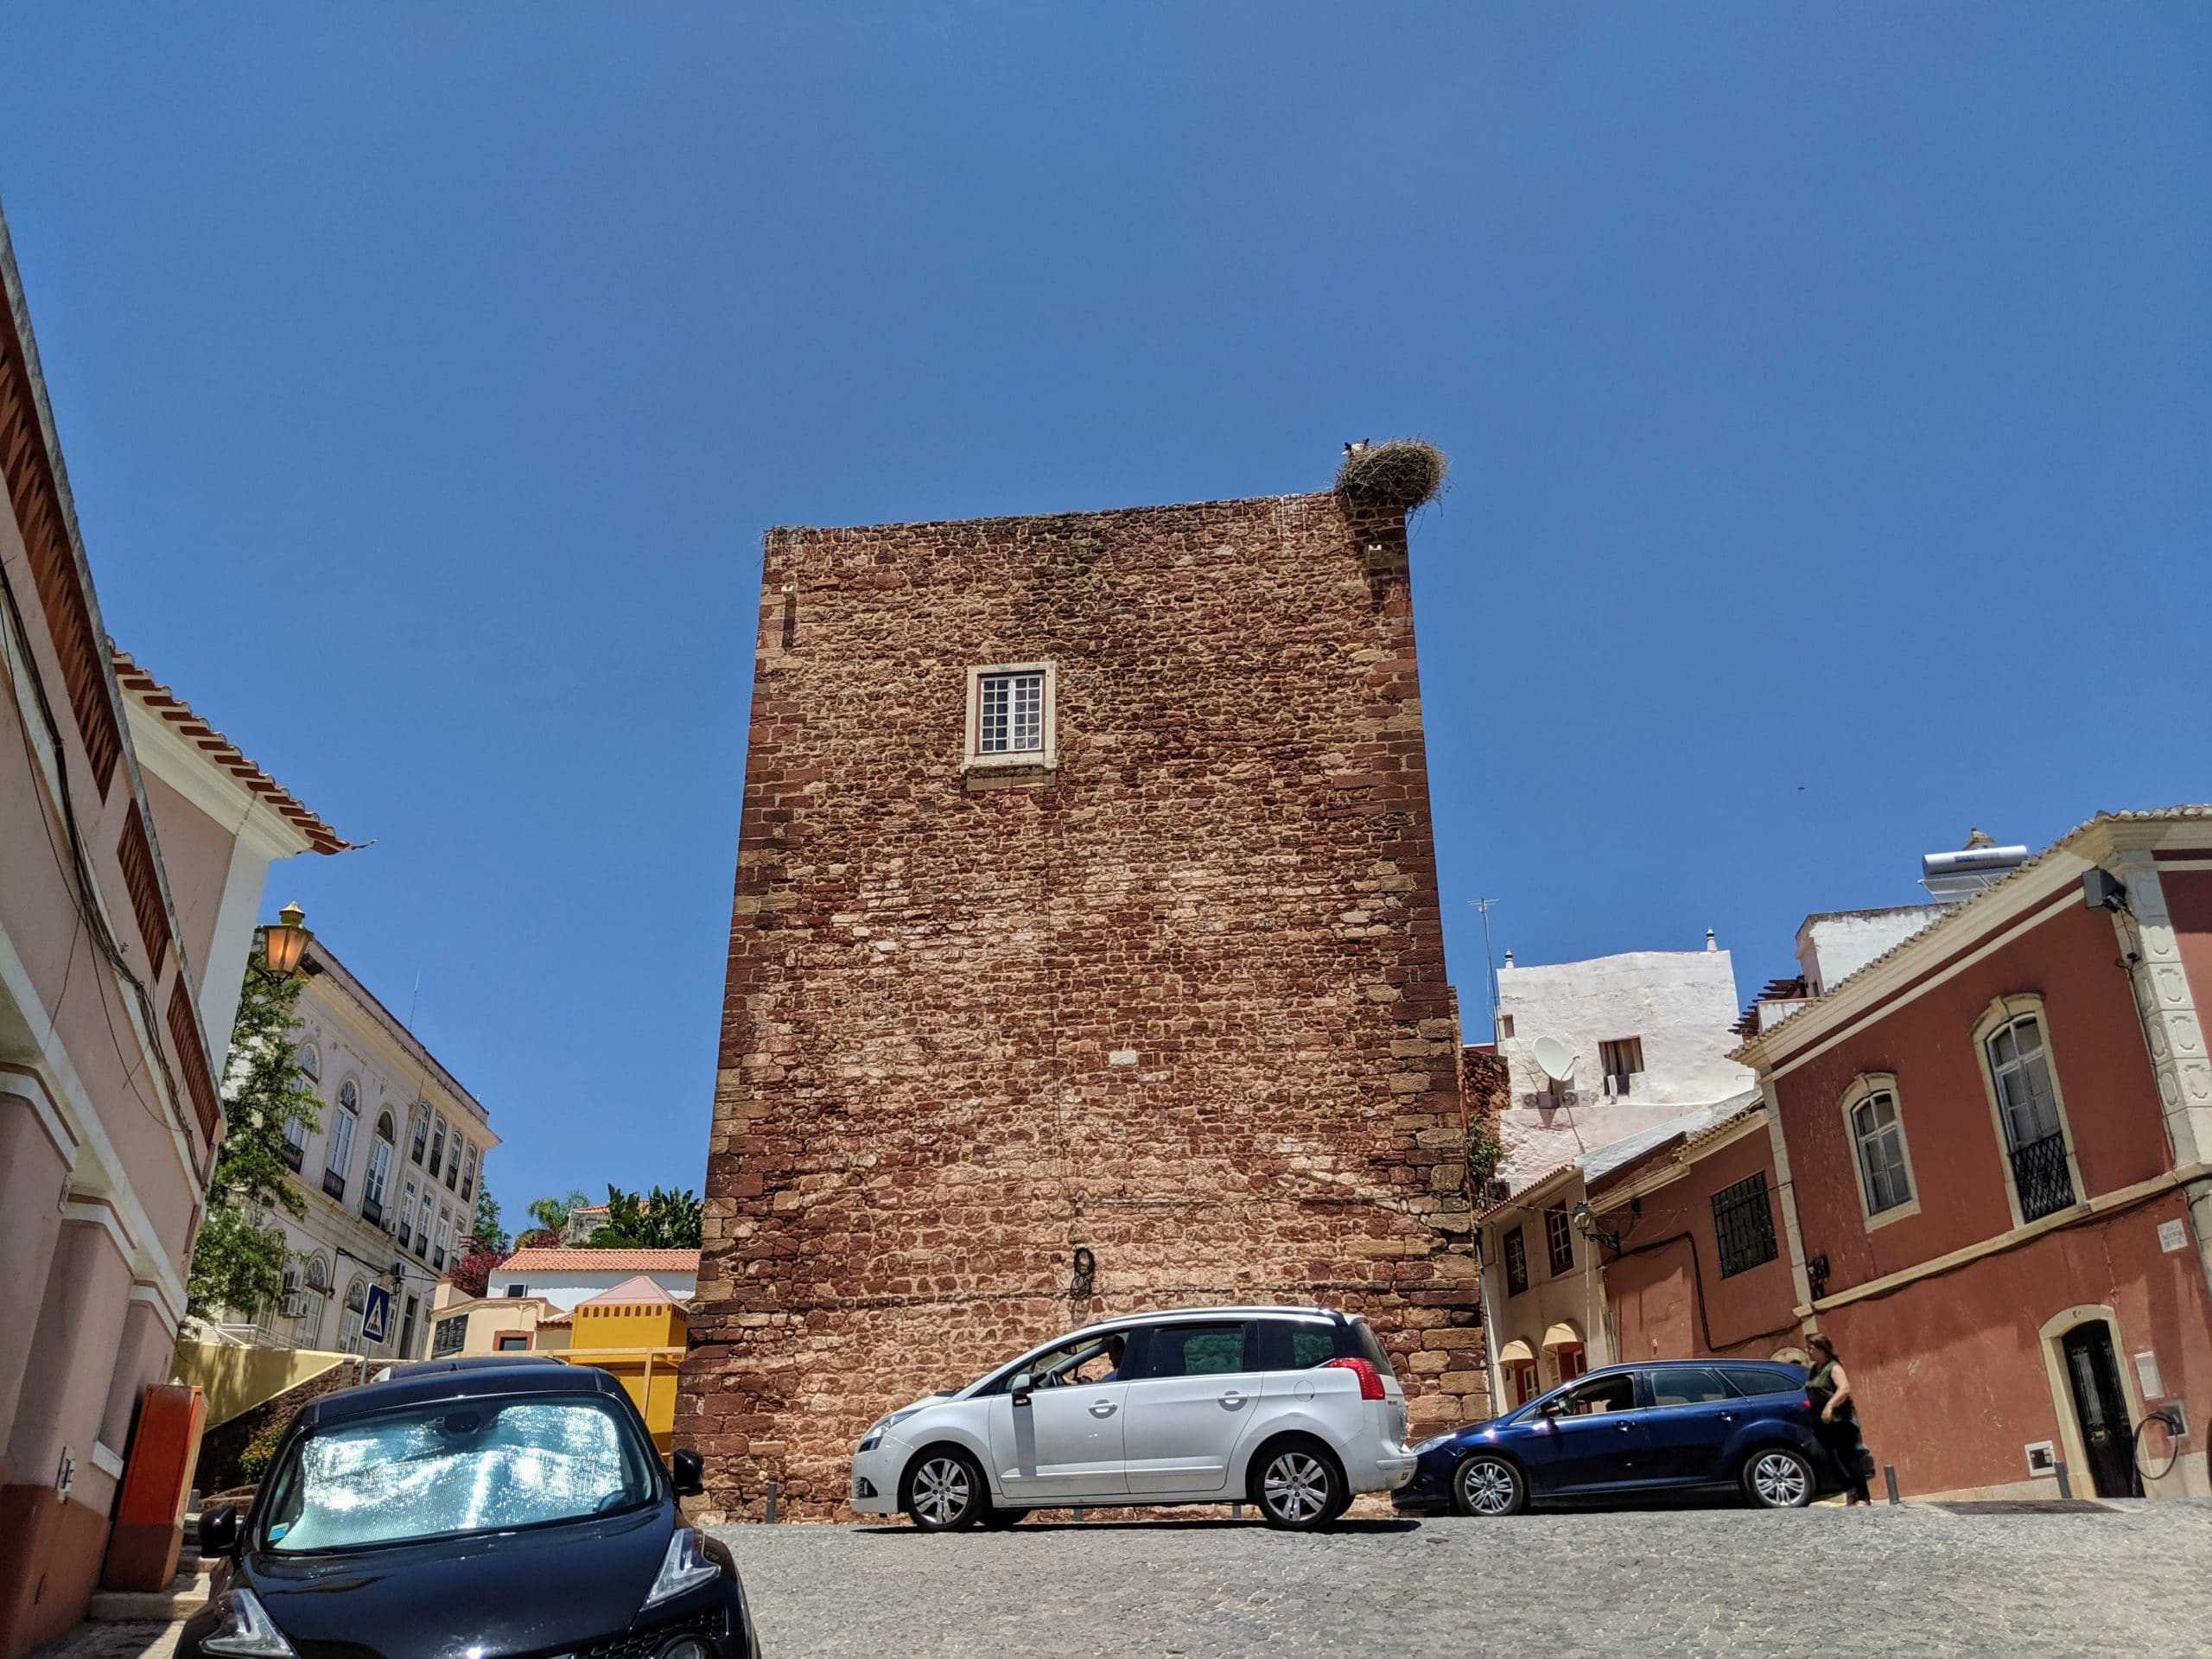 The Turret of the City Gate - Silves, Algarve